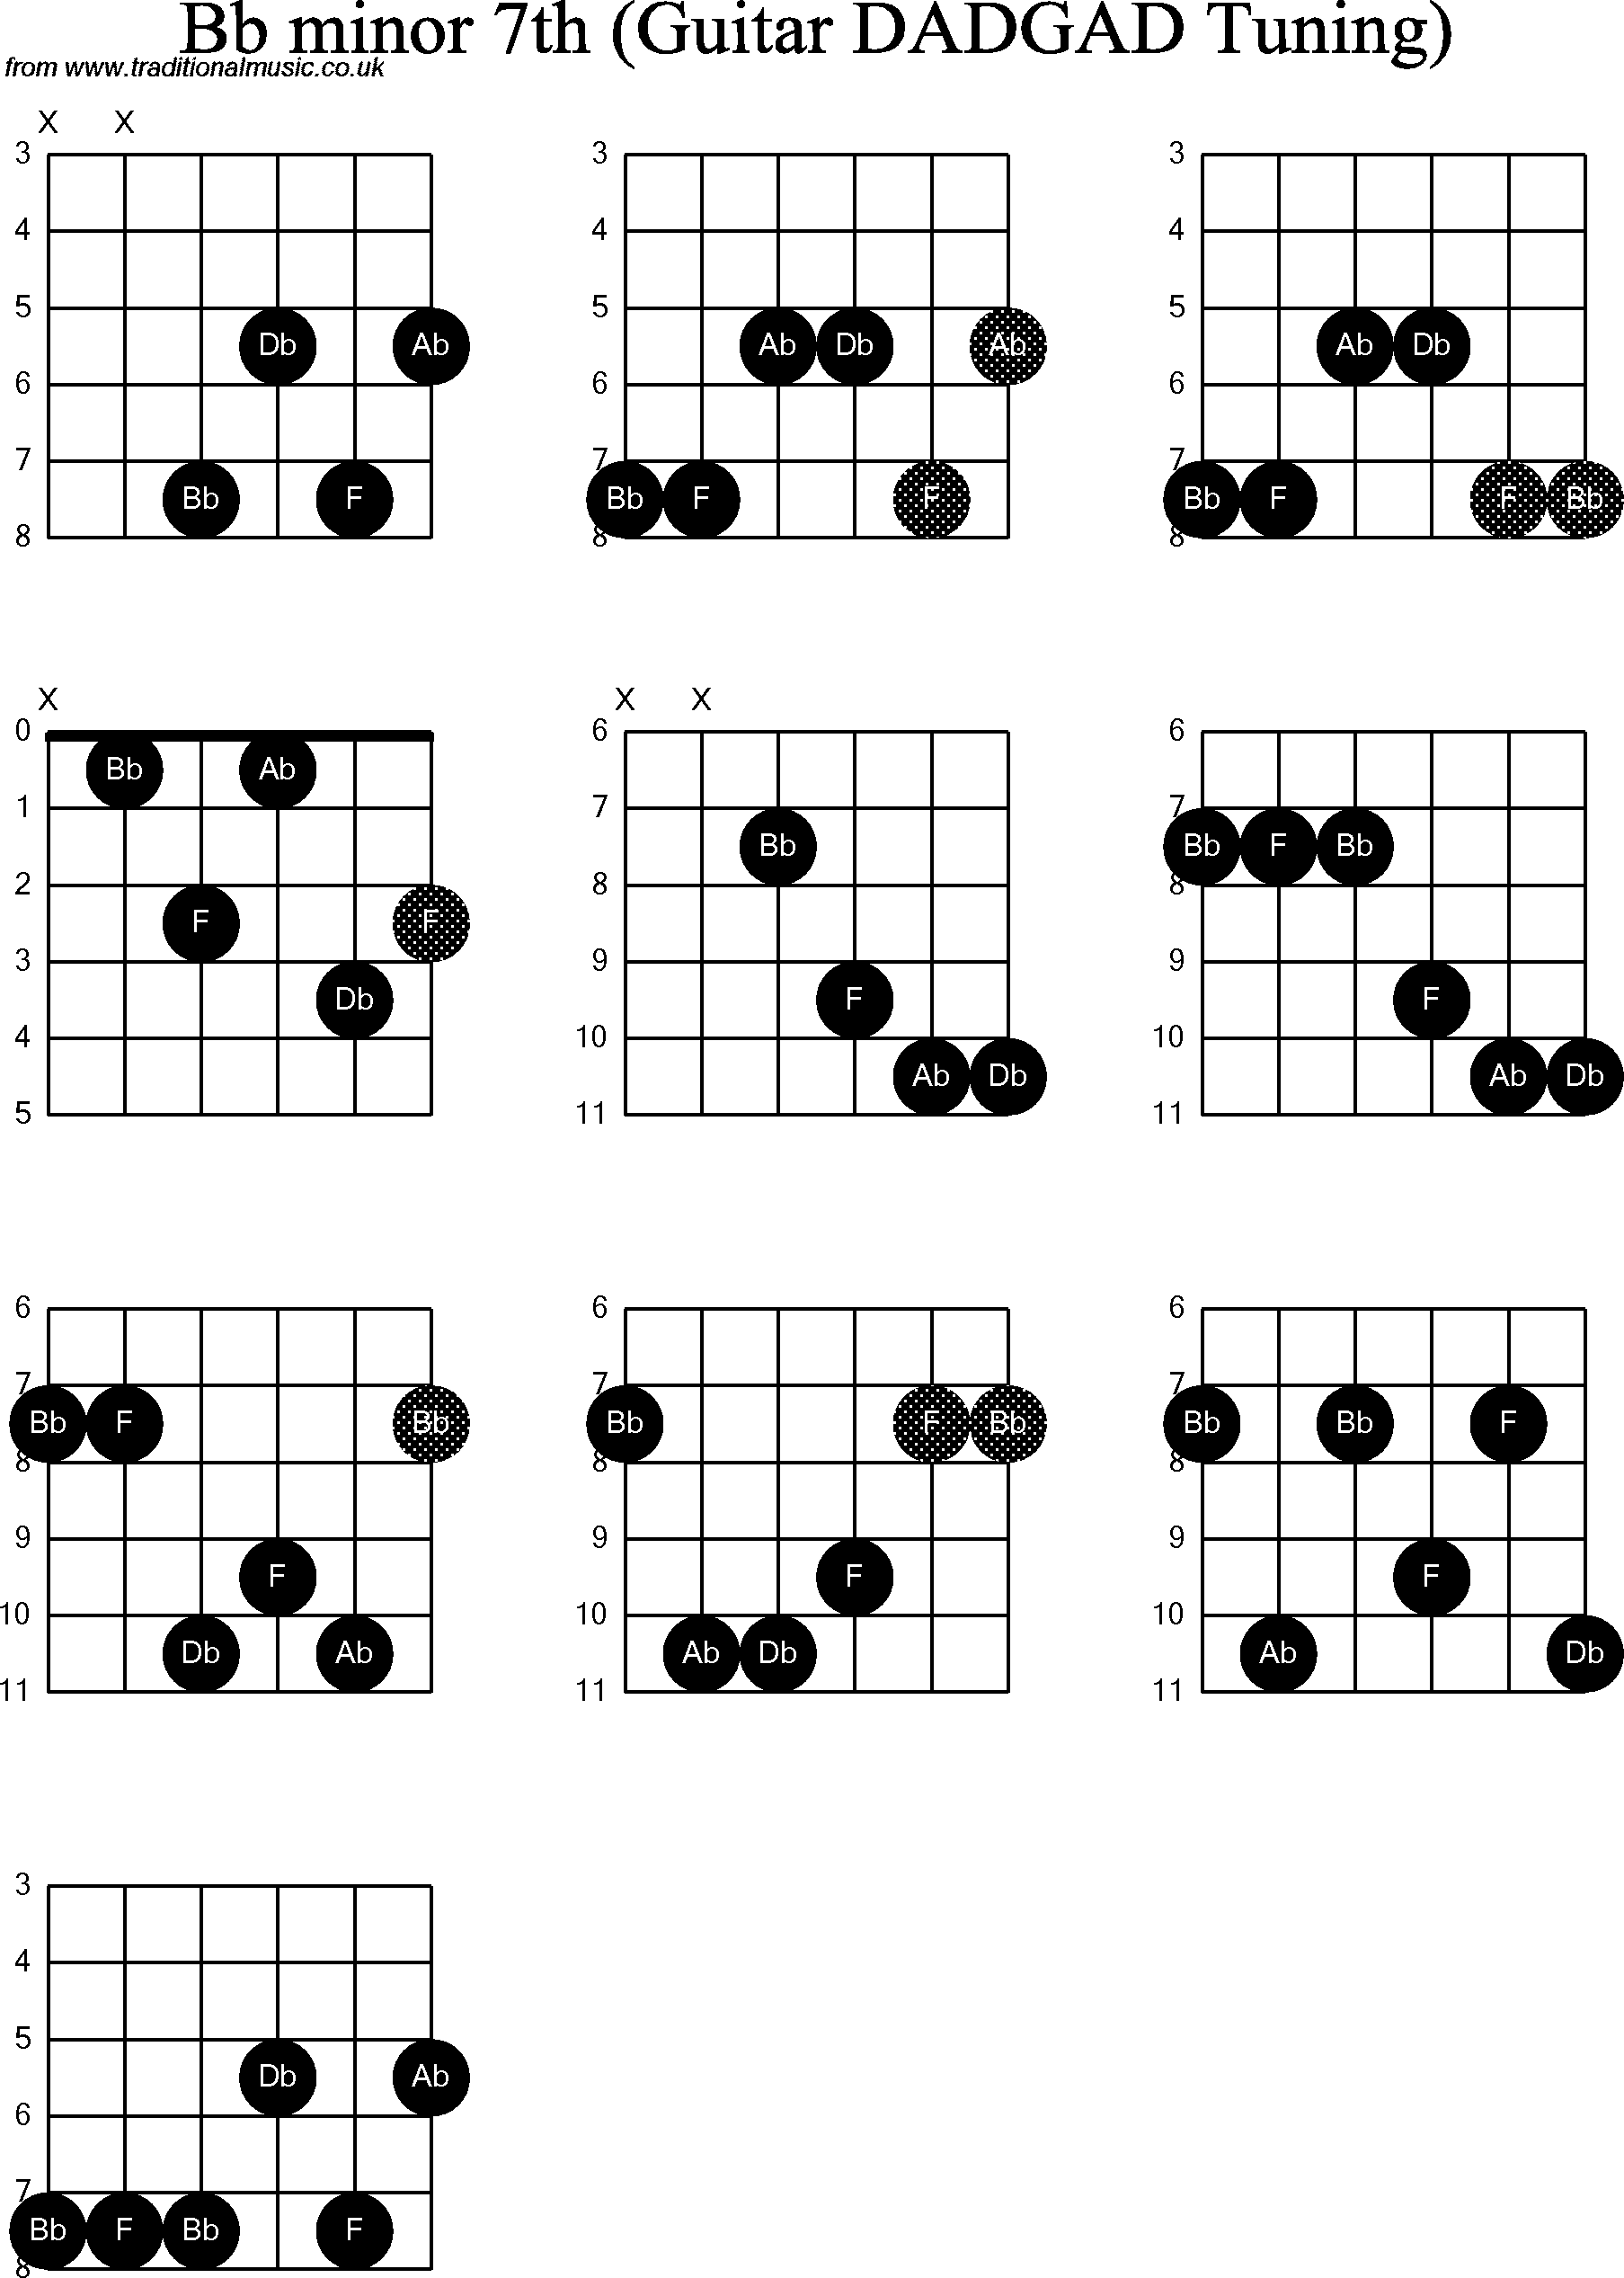 Chord Diagrams D Modal Guitar Dadgad Bb Minor7th